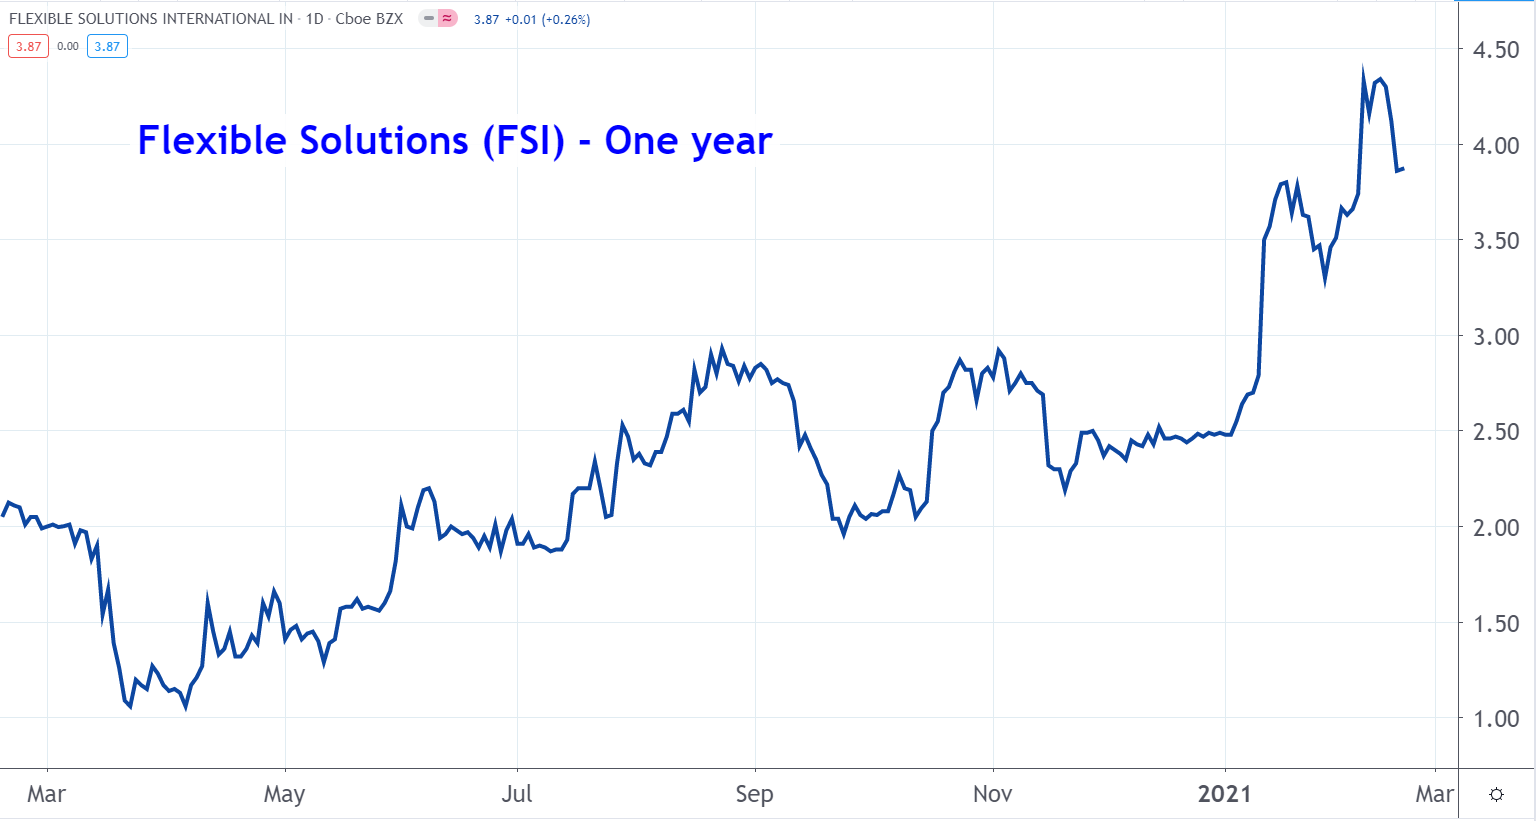 Line graph of Flexible Solutions stock price from March 2020 to March 2021, showing a steady uptrend